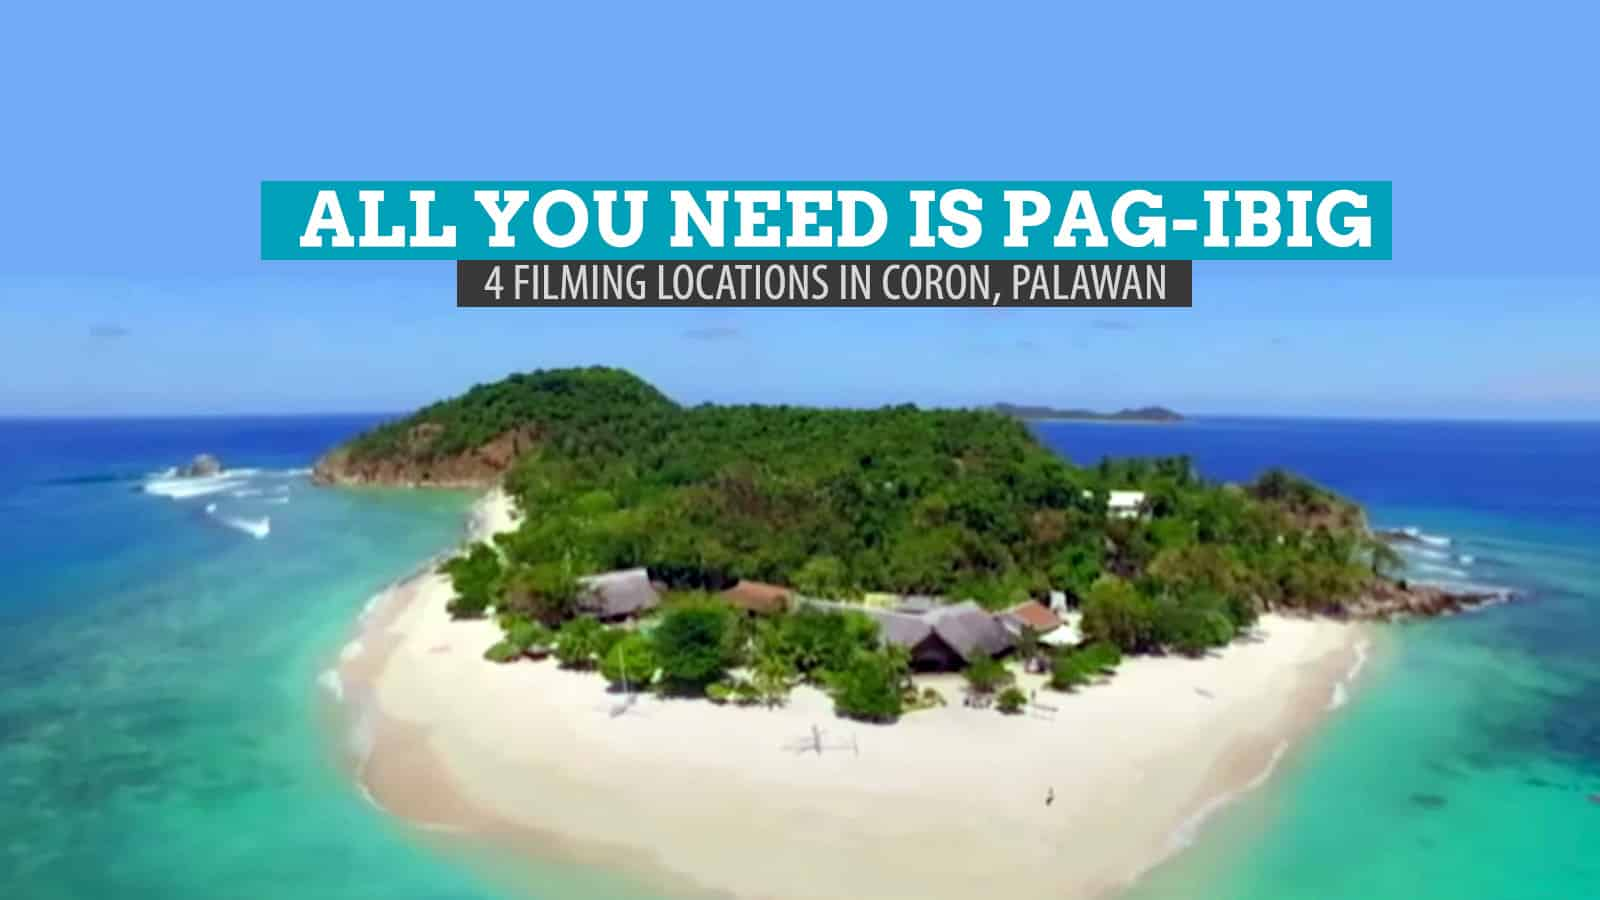 All You Need is Pag-ibig: 4 Filming Locations in Coron, Palawan